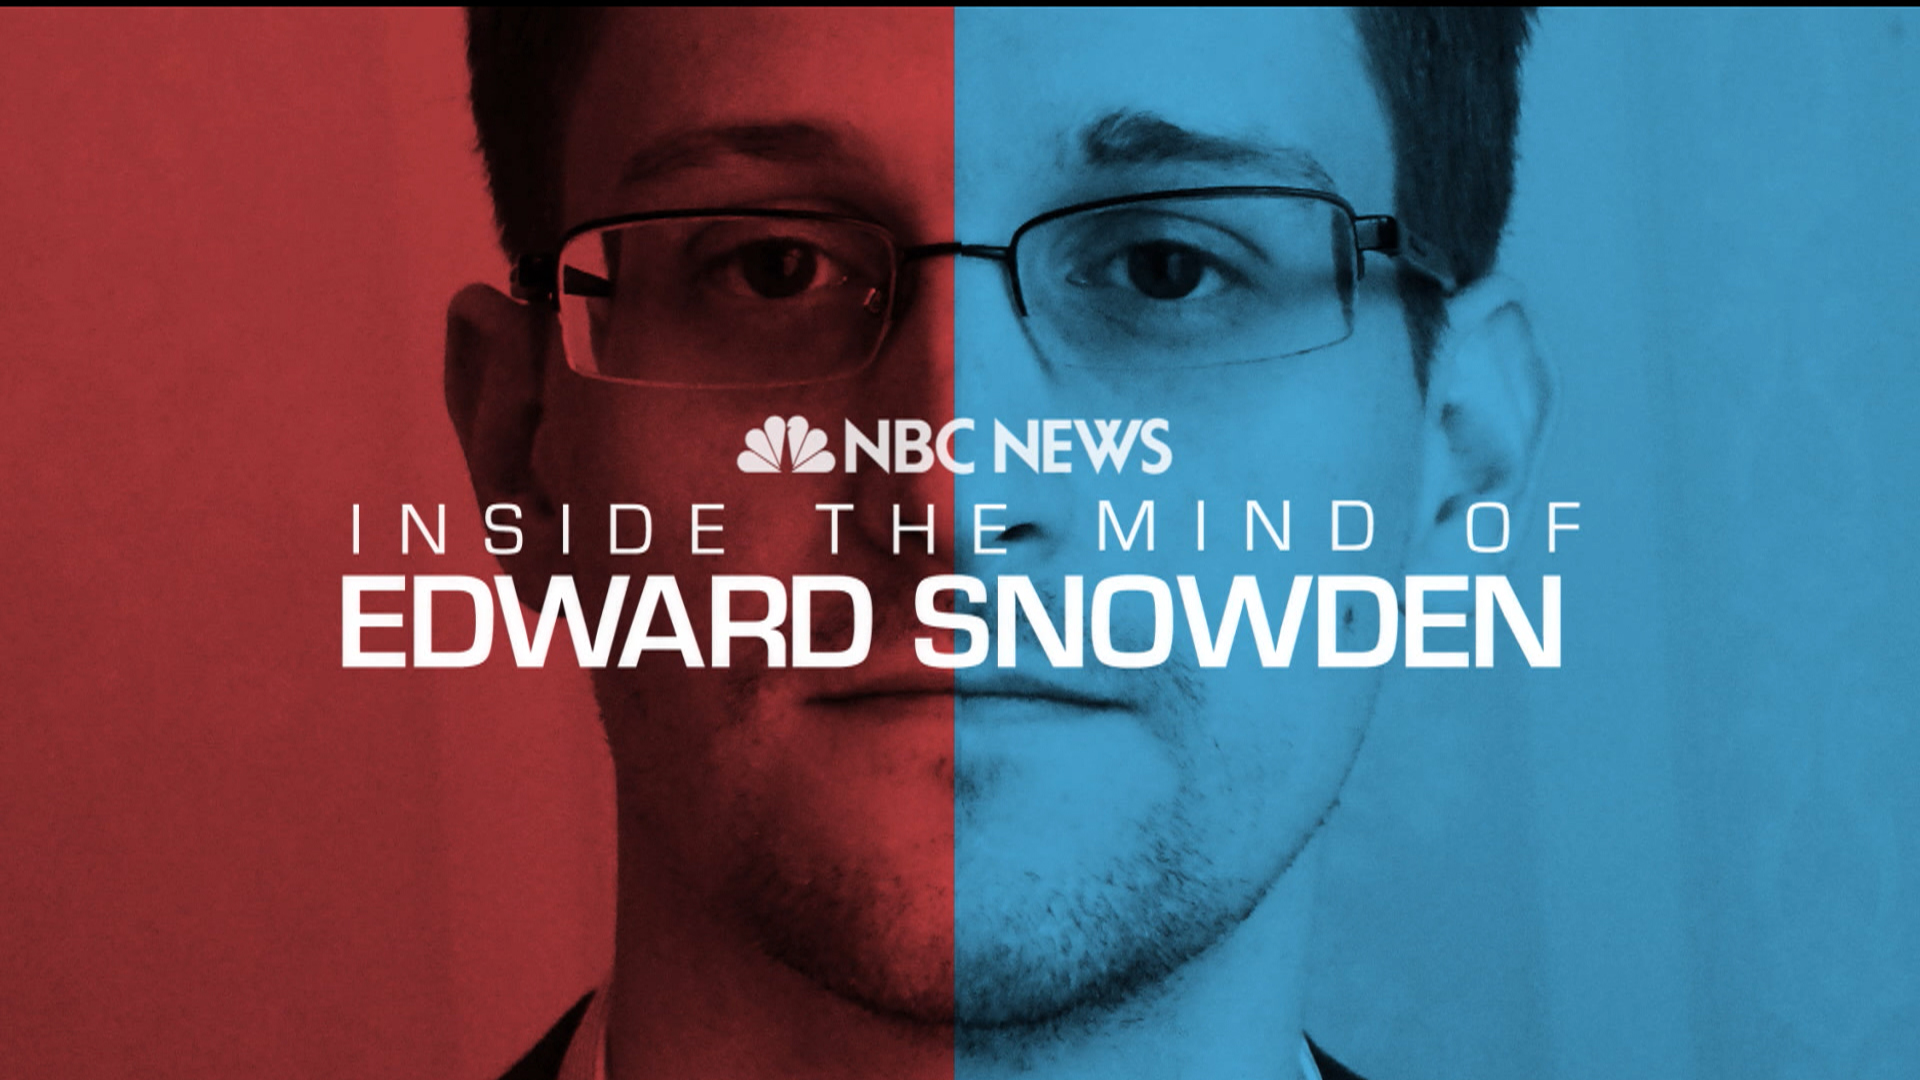 edward snowden 2 essay Unconstitutional actions, cia, computer security - edward snowden: traitor or whistleblower.